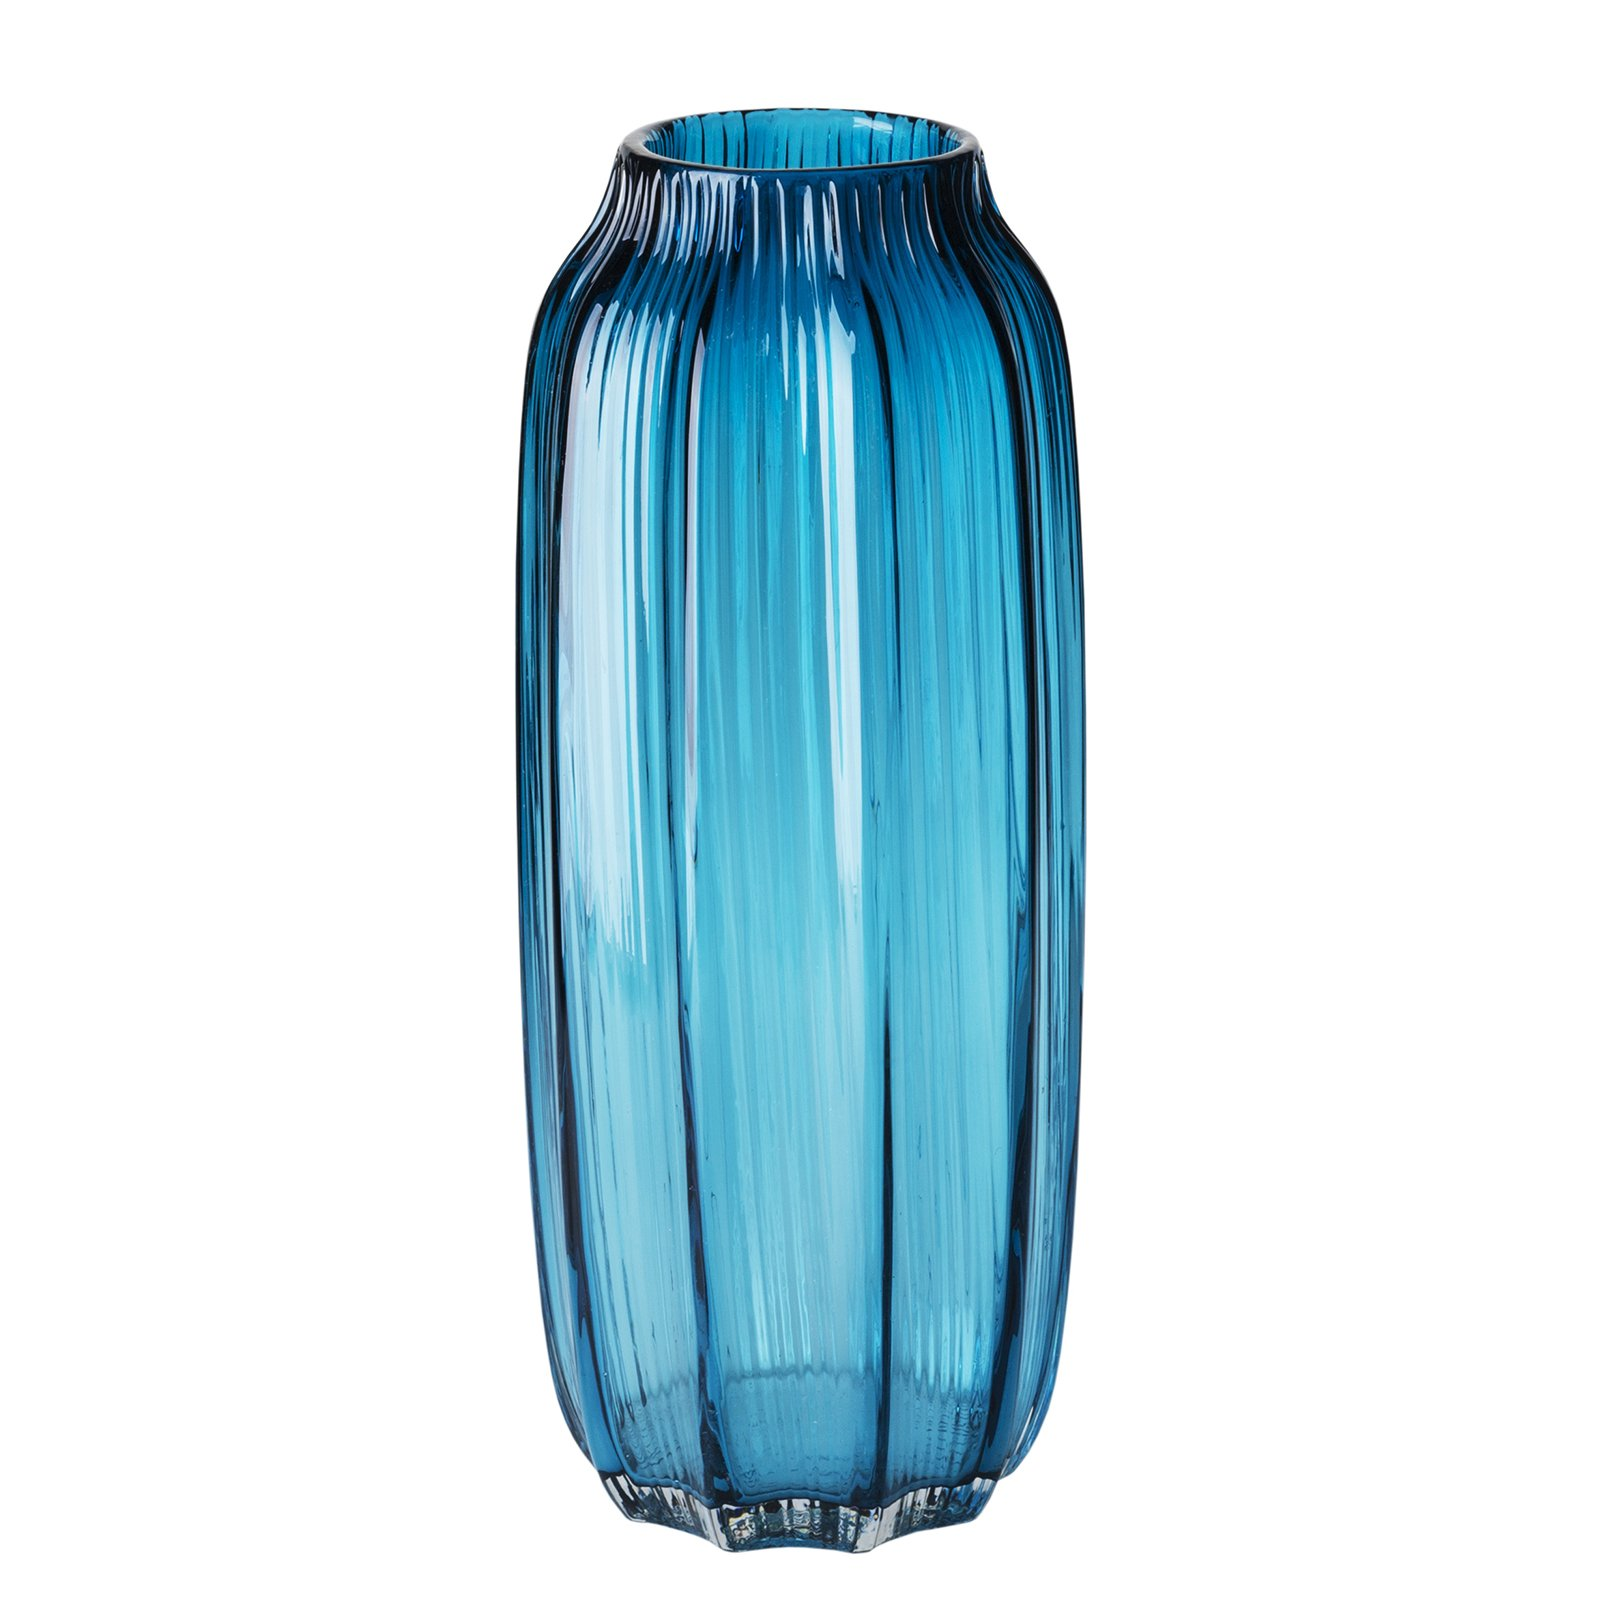 CASAMOTION Vases Hand Blown Solid Color Home Decor Centerpieces Gift Art Ribbed Glass Vase, Blue, 12''